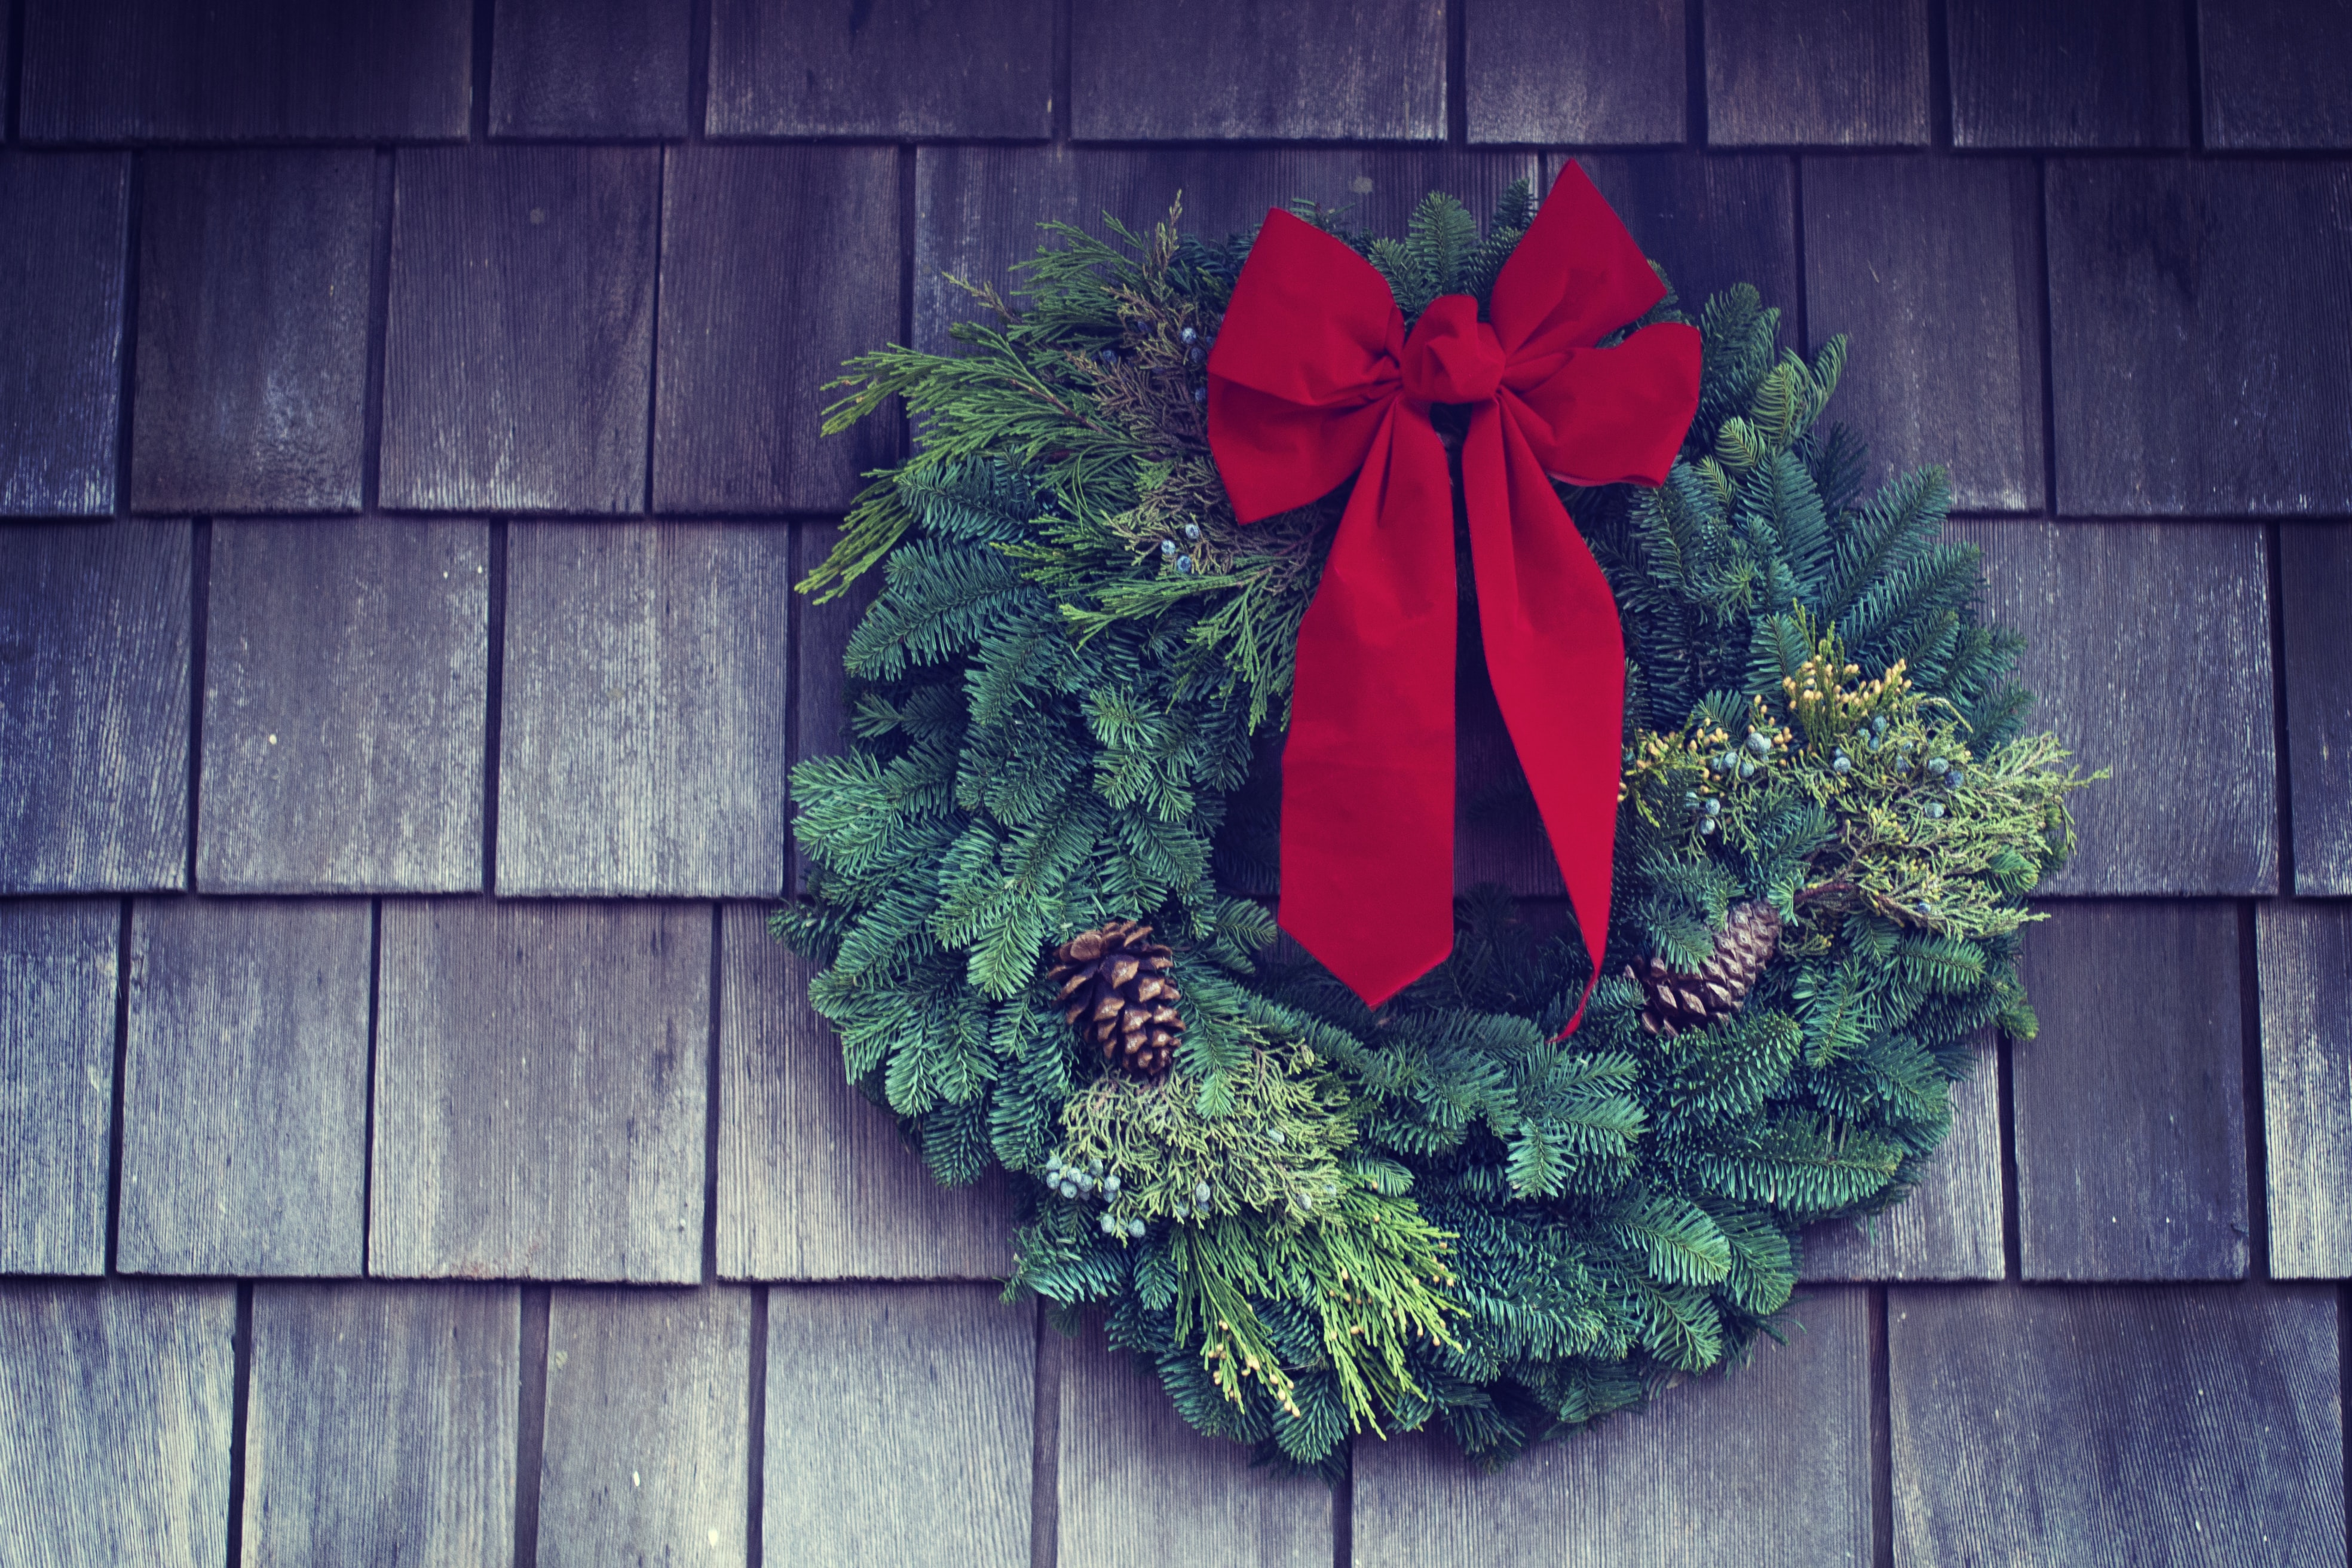 A Christmas wreath with a red bow and pinecones hanging on the side of a shingled house